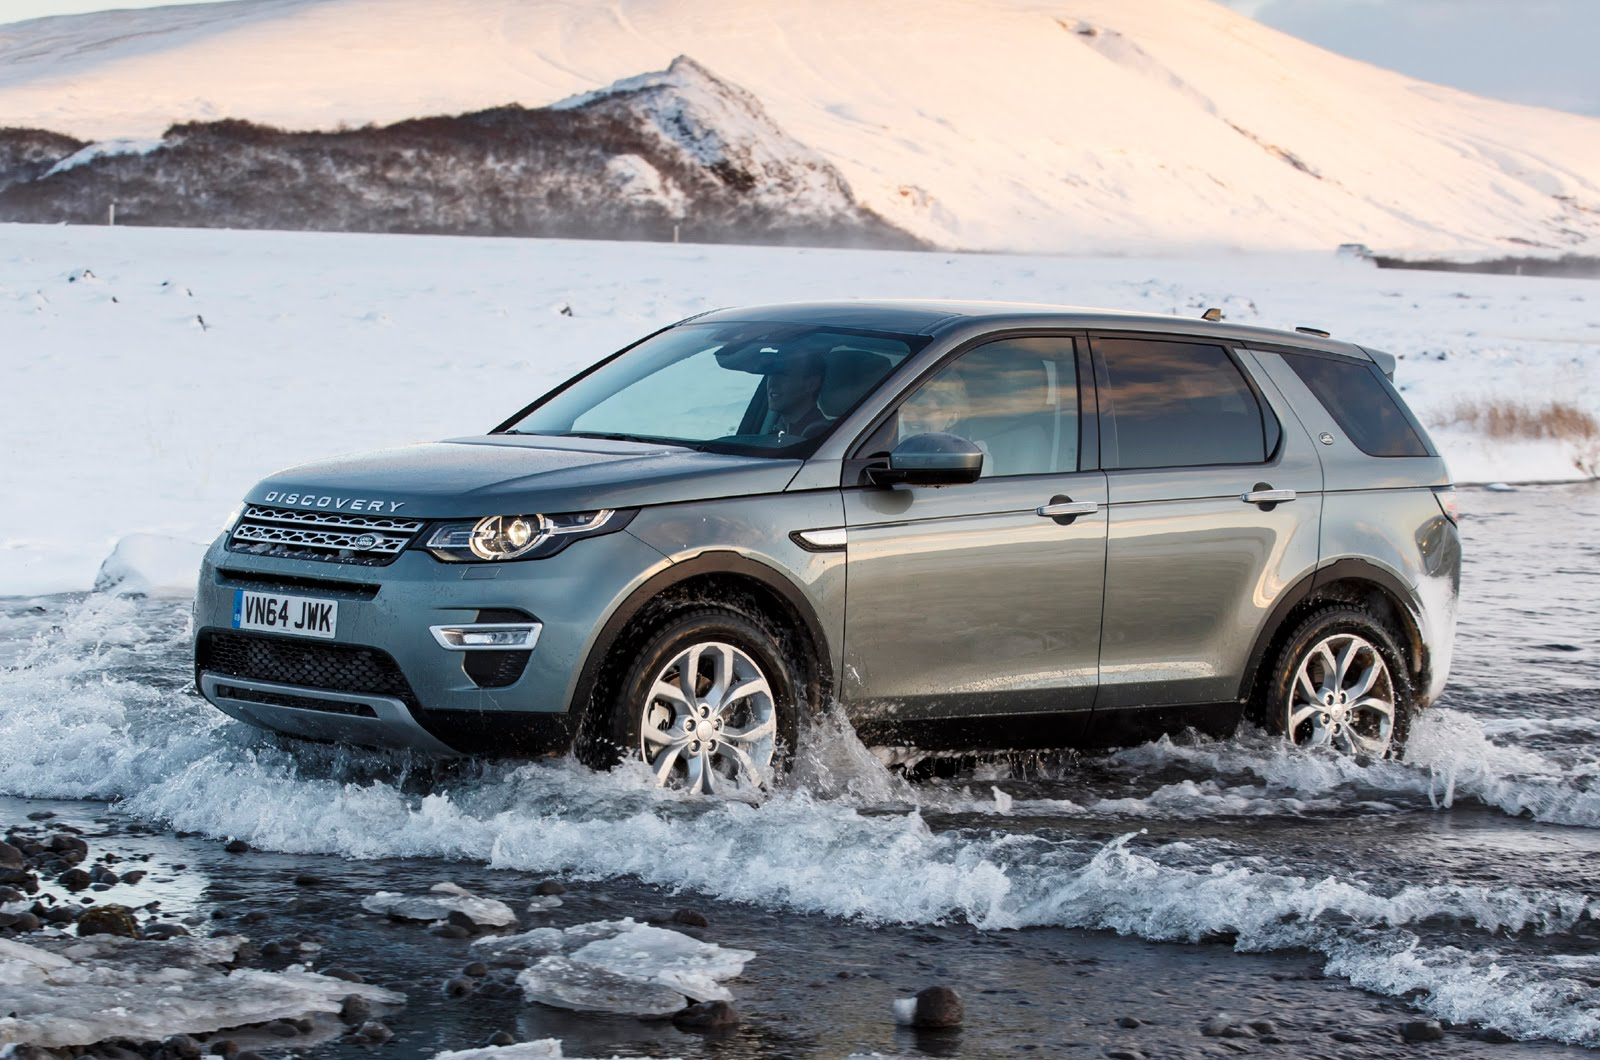 2015 land rover discovery sport coming to india ilive2drive. Black Bedroom Furniture Sets. Home Design Ideas